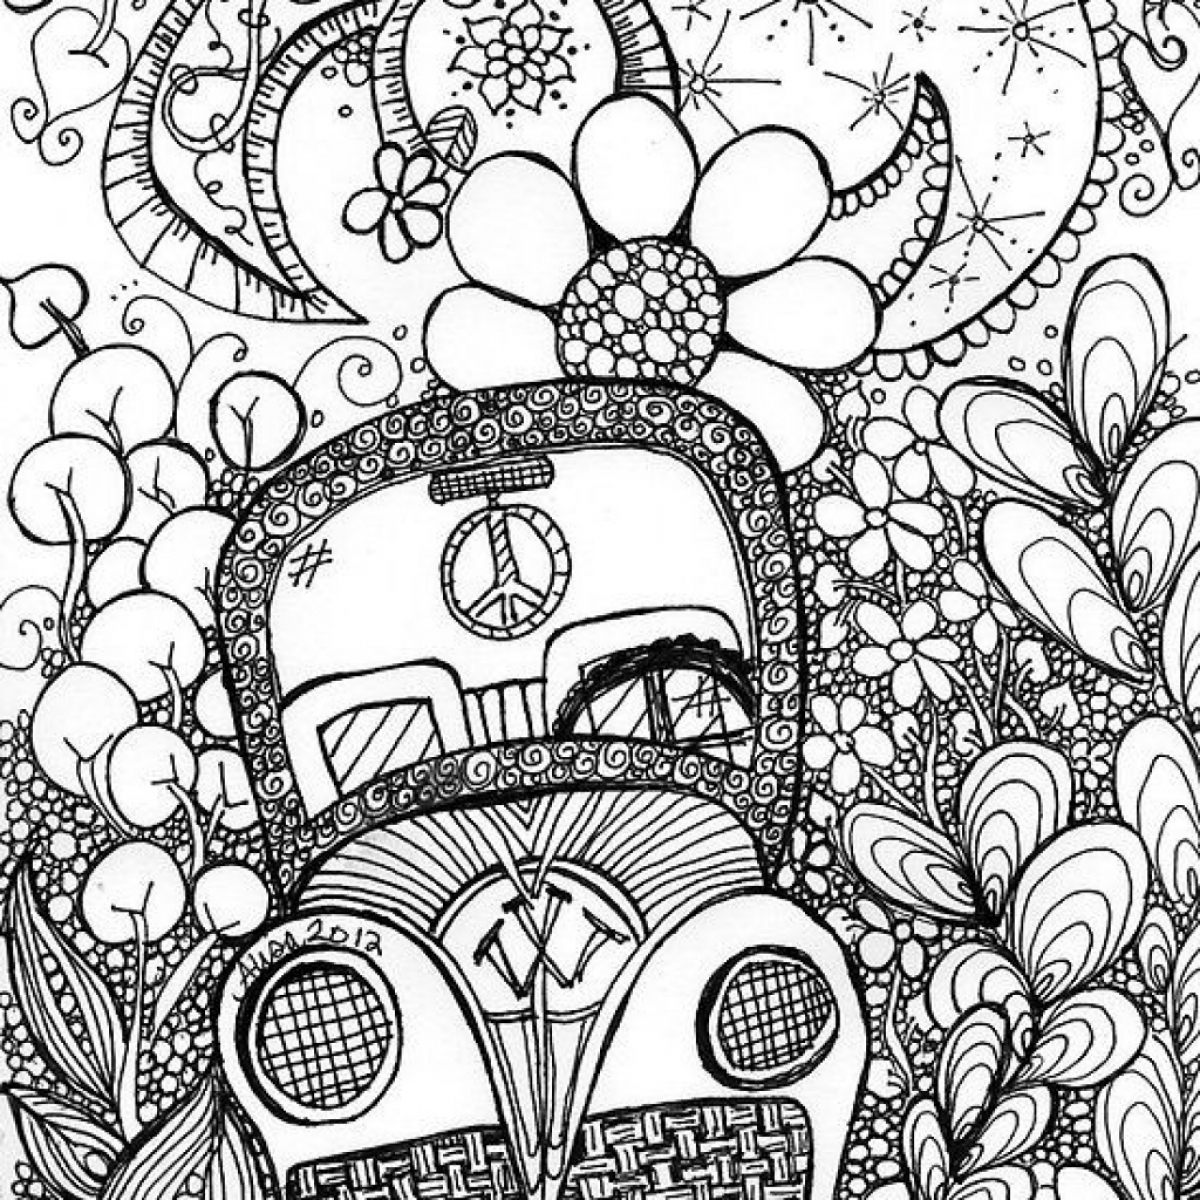 trippy coloring pages get this trippy coloring pages for adults aj21y trippy coloring pages